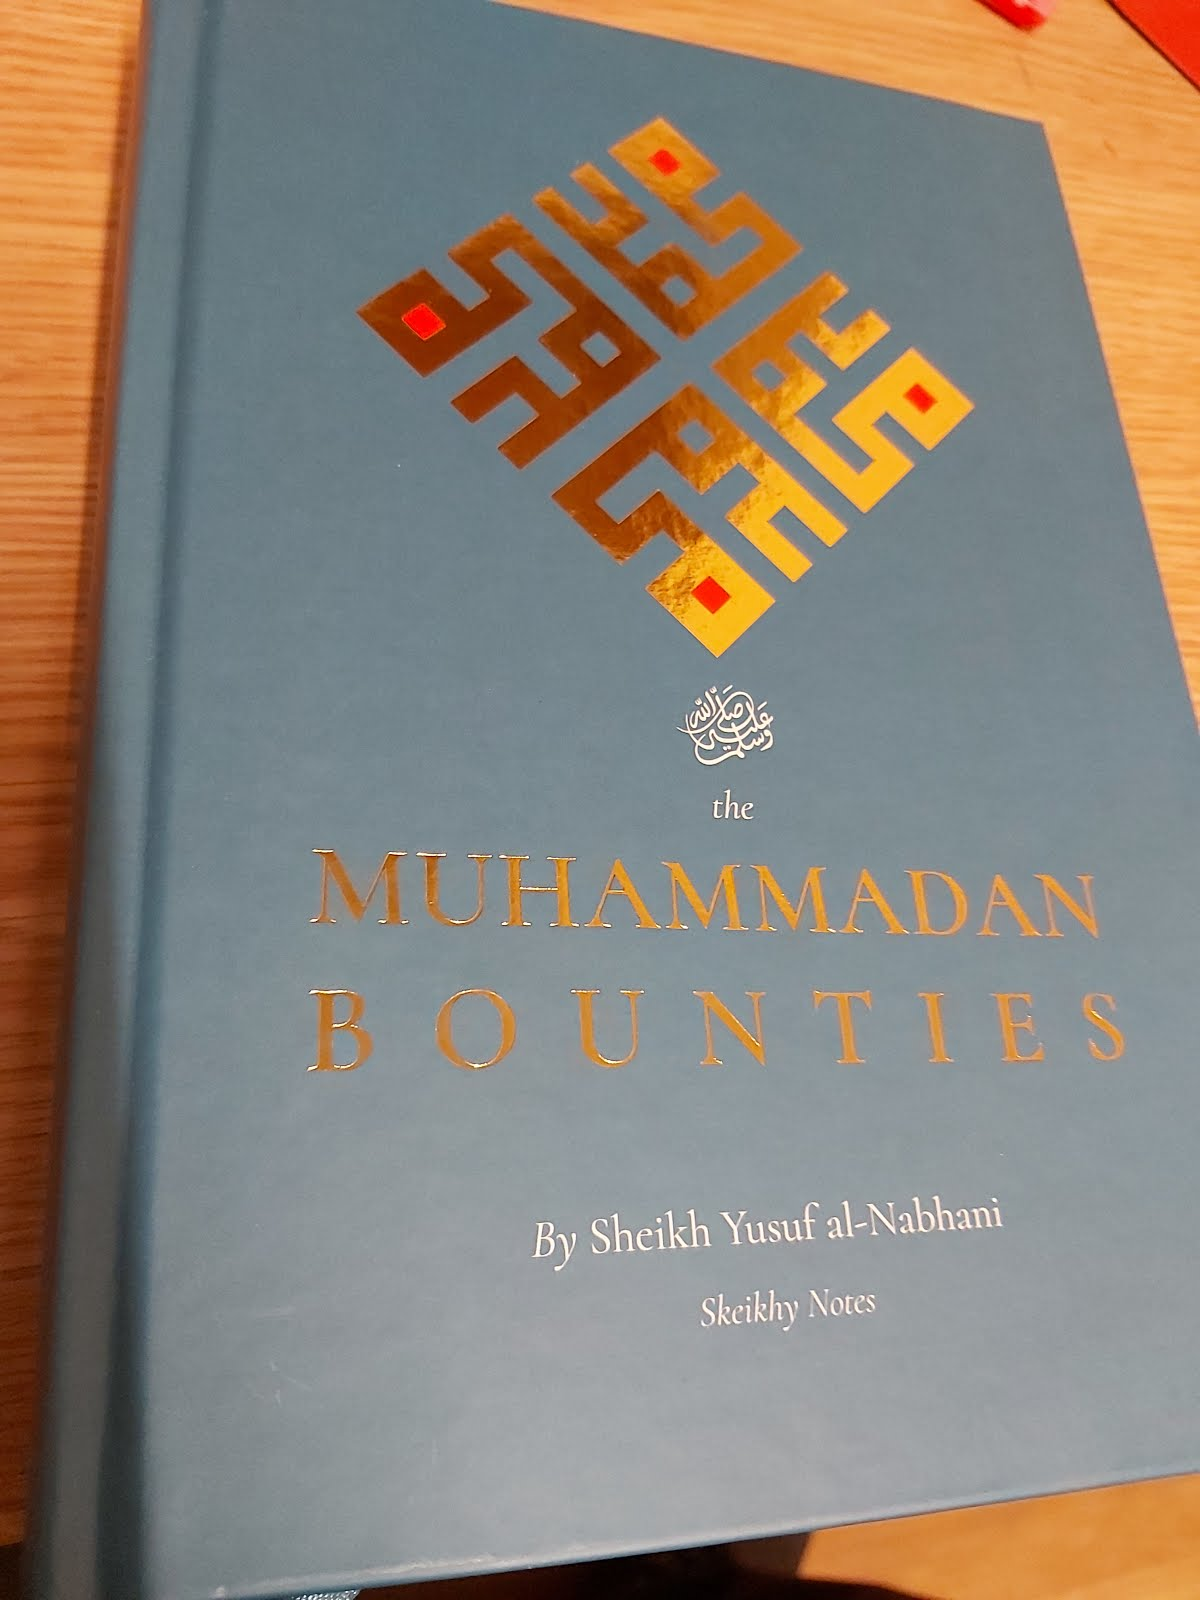 Muhammad Bounties